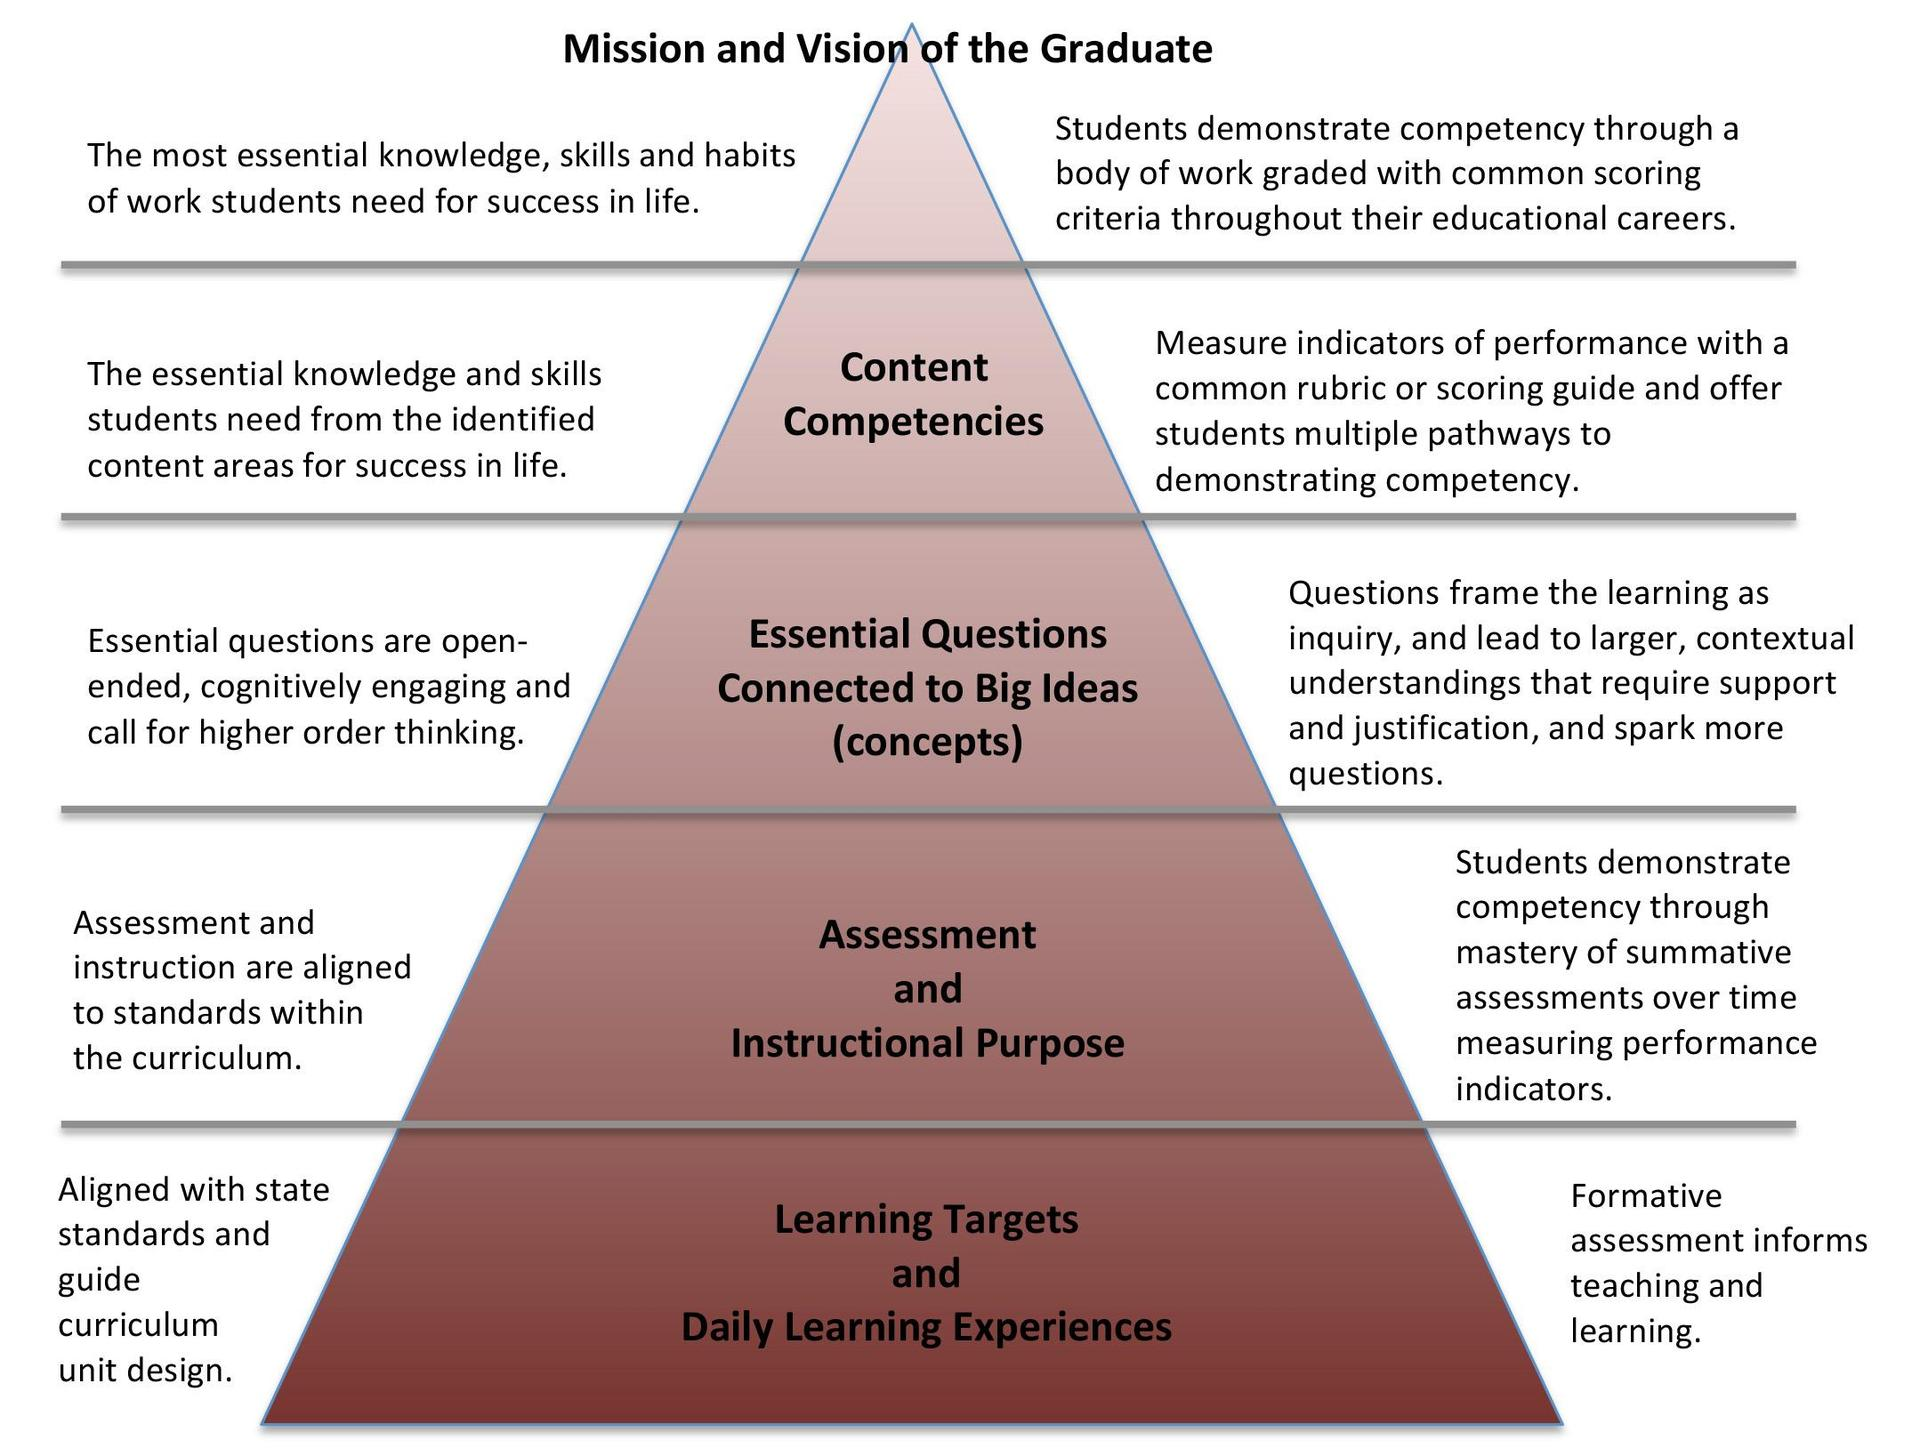 Bottom of pyramid contains learning targets and daily learning experiences. They are aligned with state standards and guide curriculum unit design.  Formative assessment informs teaching and learning.  The second part of the pyramid is assessment and instructional purpose.  Assessment and instruction are aligned to standards within the curriculum.  Students demonstrate competency through mastery of summative assessments over time measuring performance indicators.    The third part of the pyramid are essential questions connected to concepts.  Essential questions are open-ended, cognitively engaging and call for higher order thinking.  Questions frame the learning as inquiry and lead to larger, contextual understandings that require support and justification and spark more questions.  The f